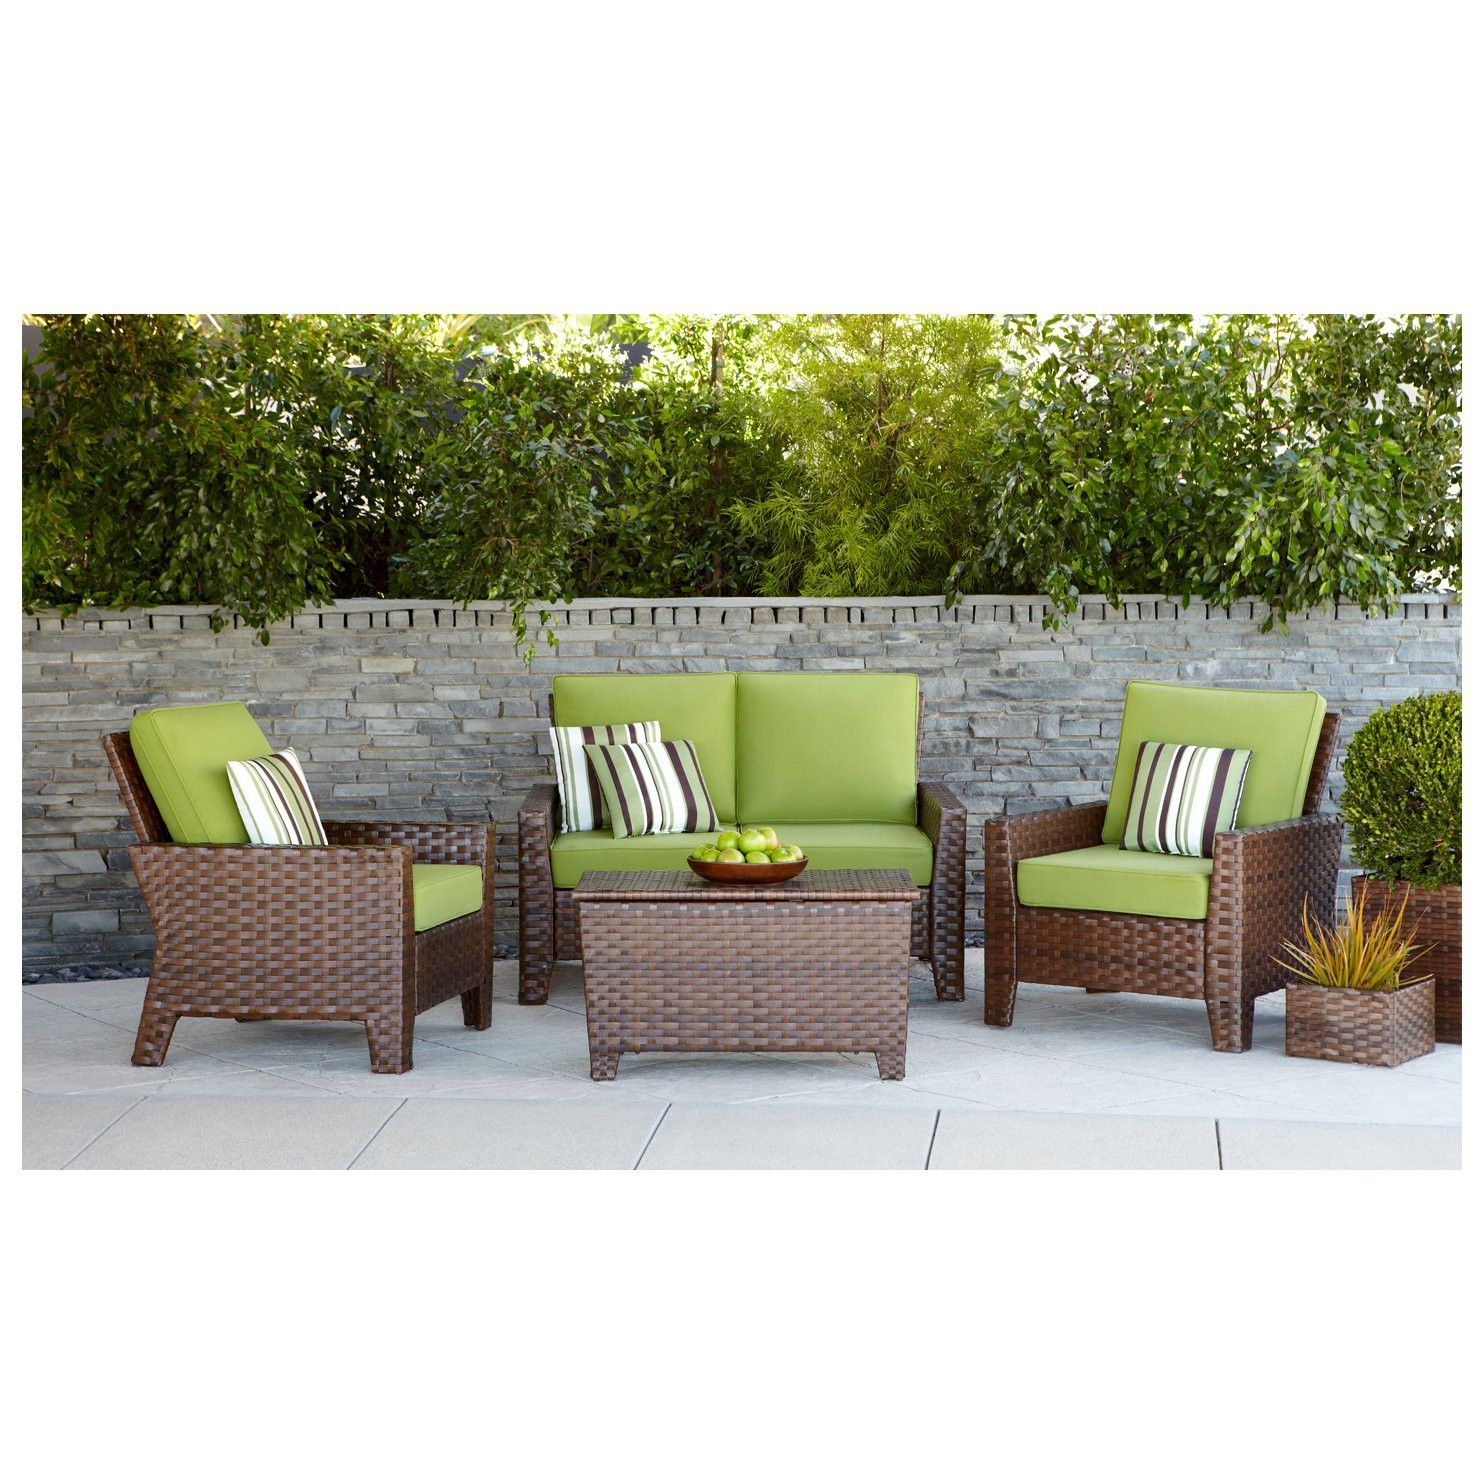 Brown Wicker Outdoor Conversation Sets Patio Furniture